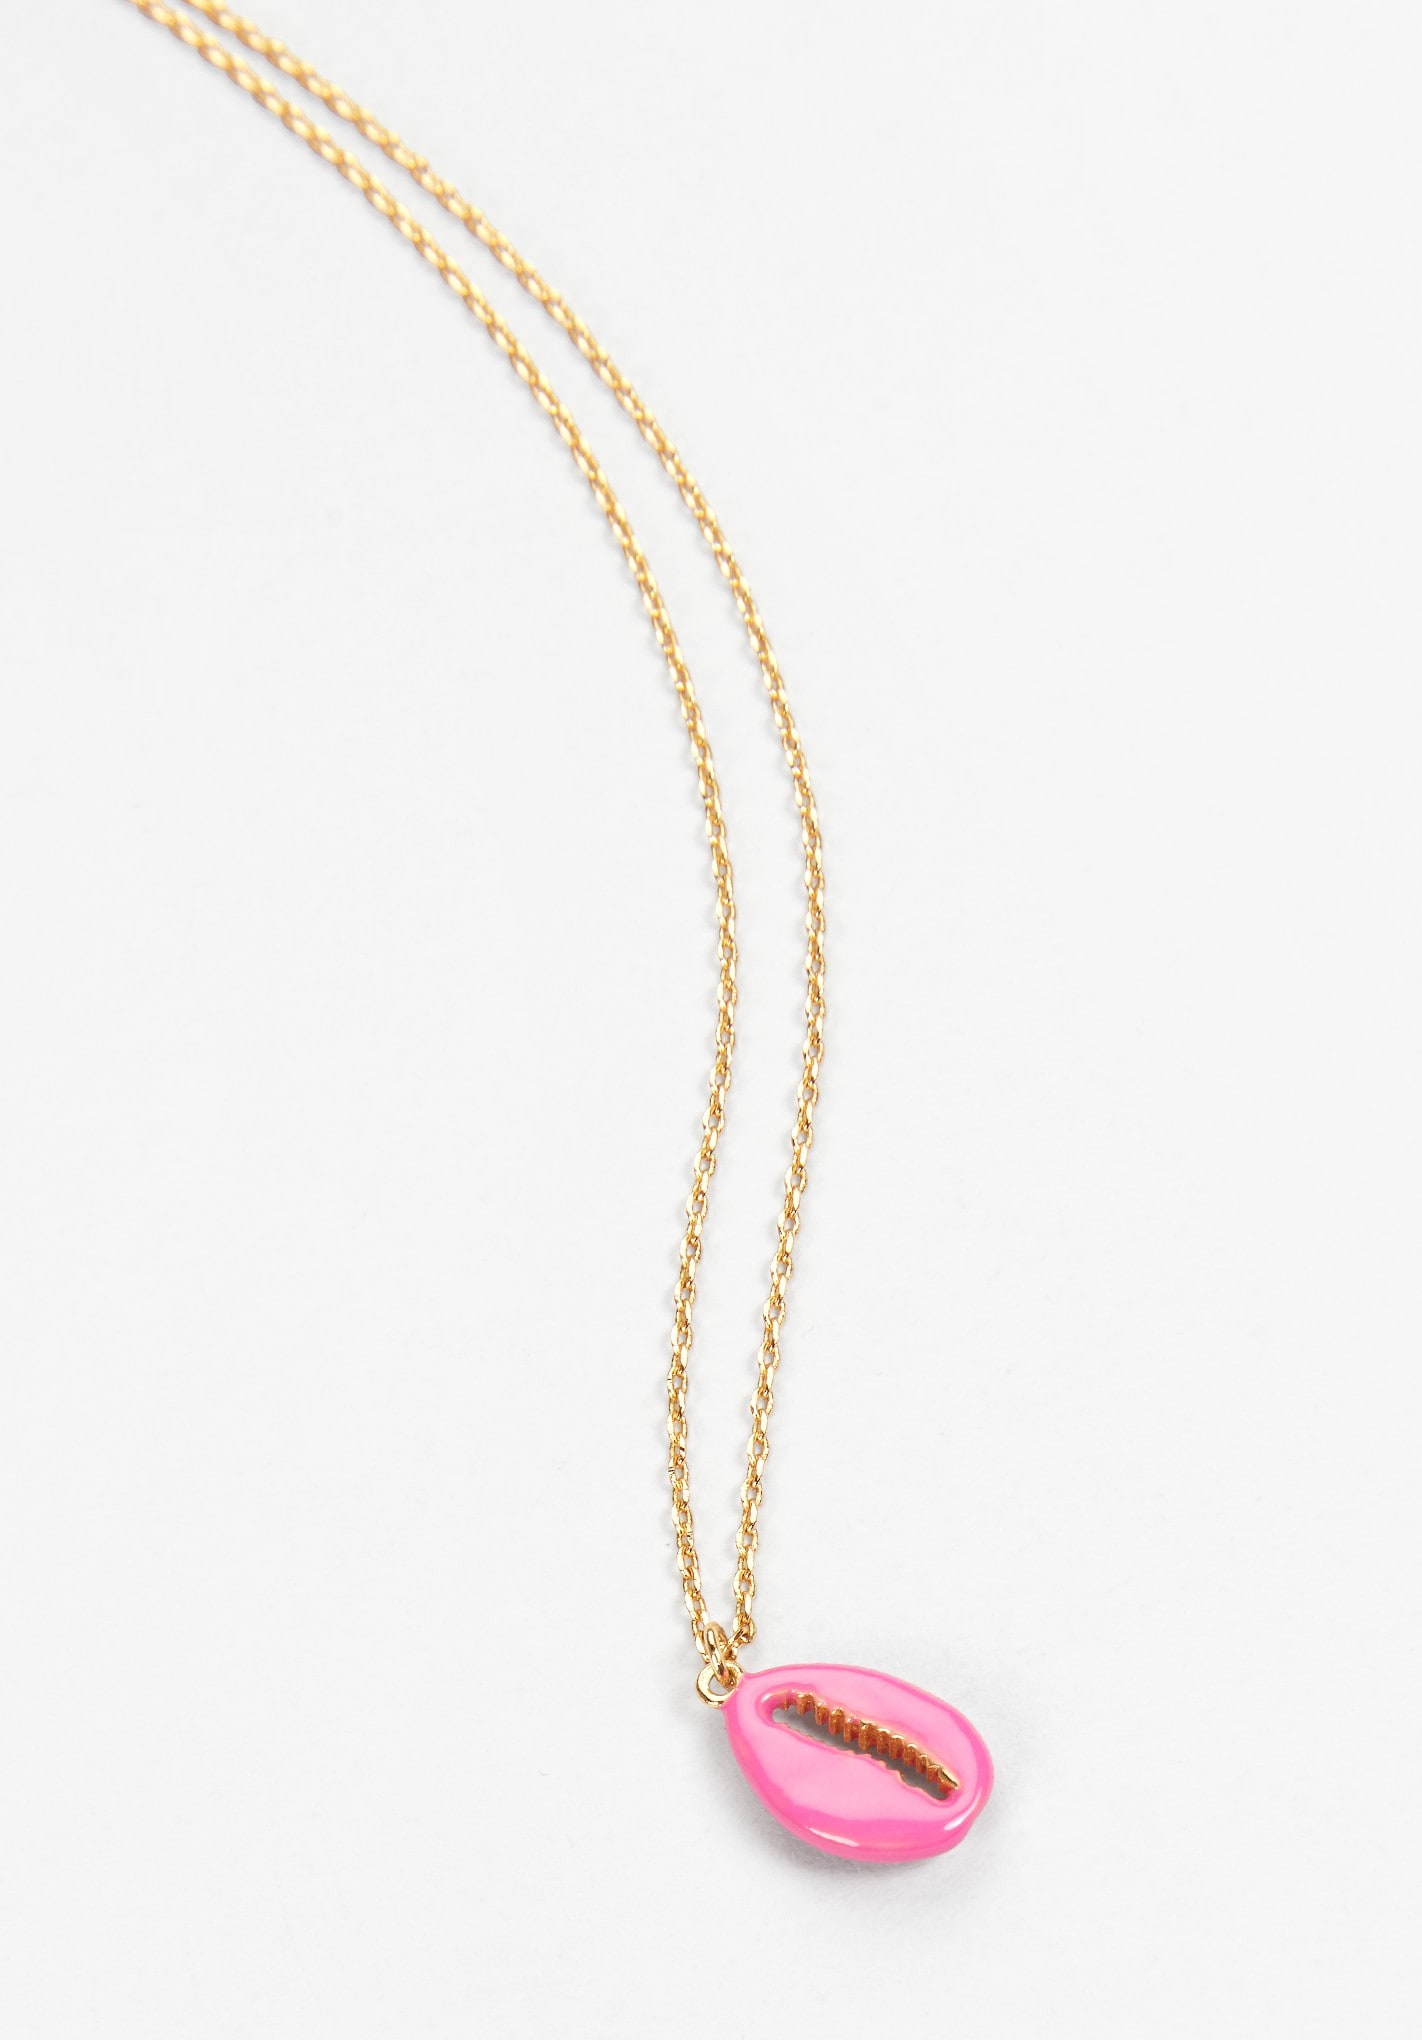 claire chain pendant gold us s necklace